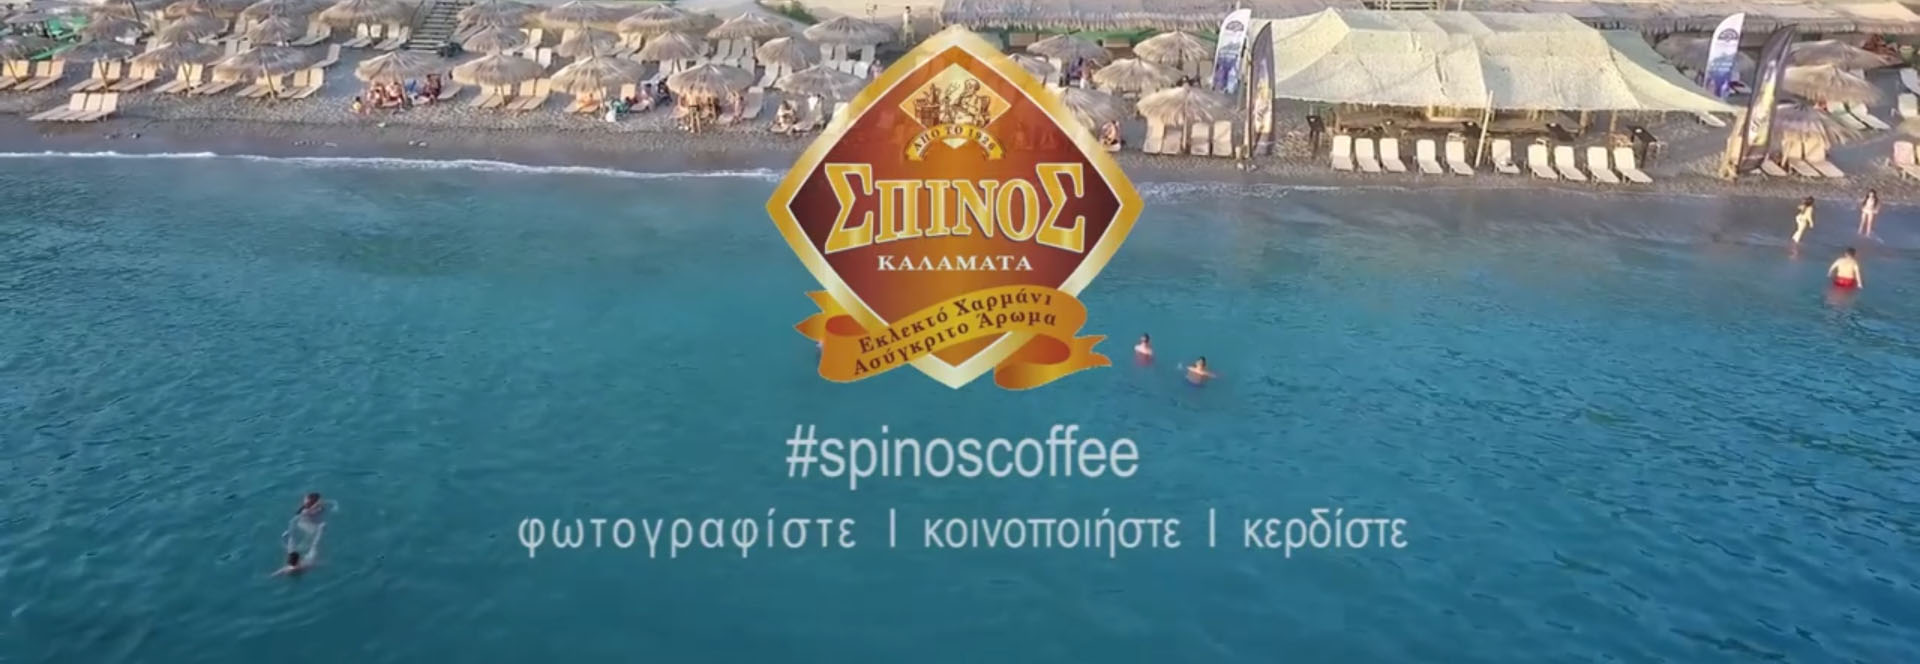 spinos coffee participants articles banner